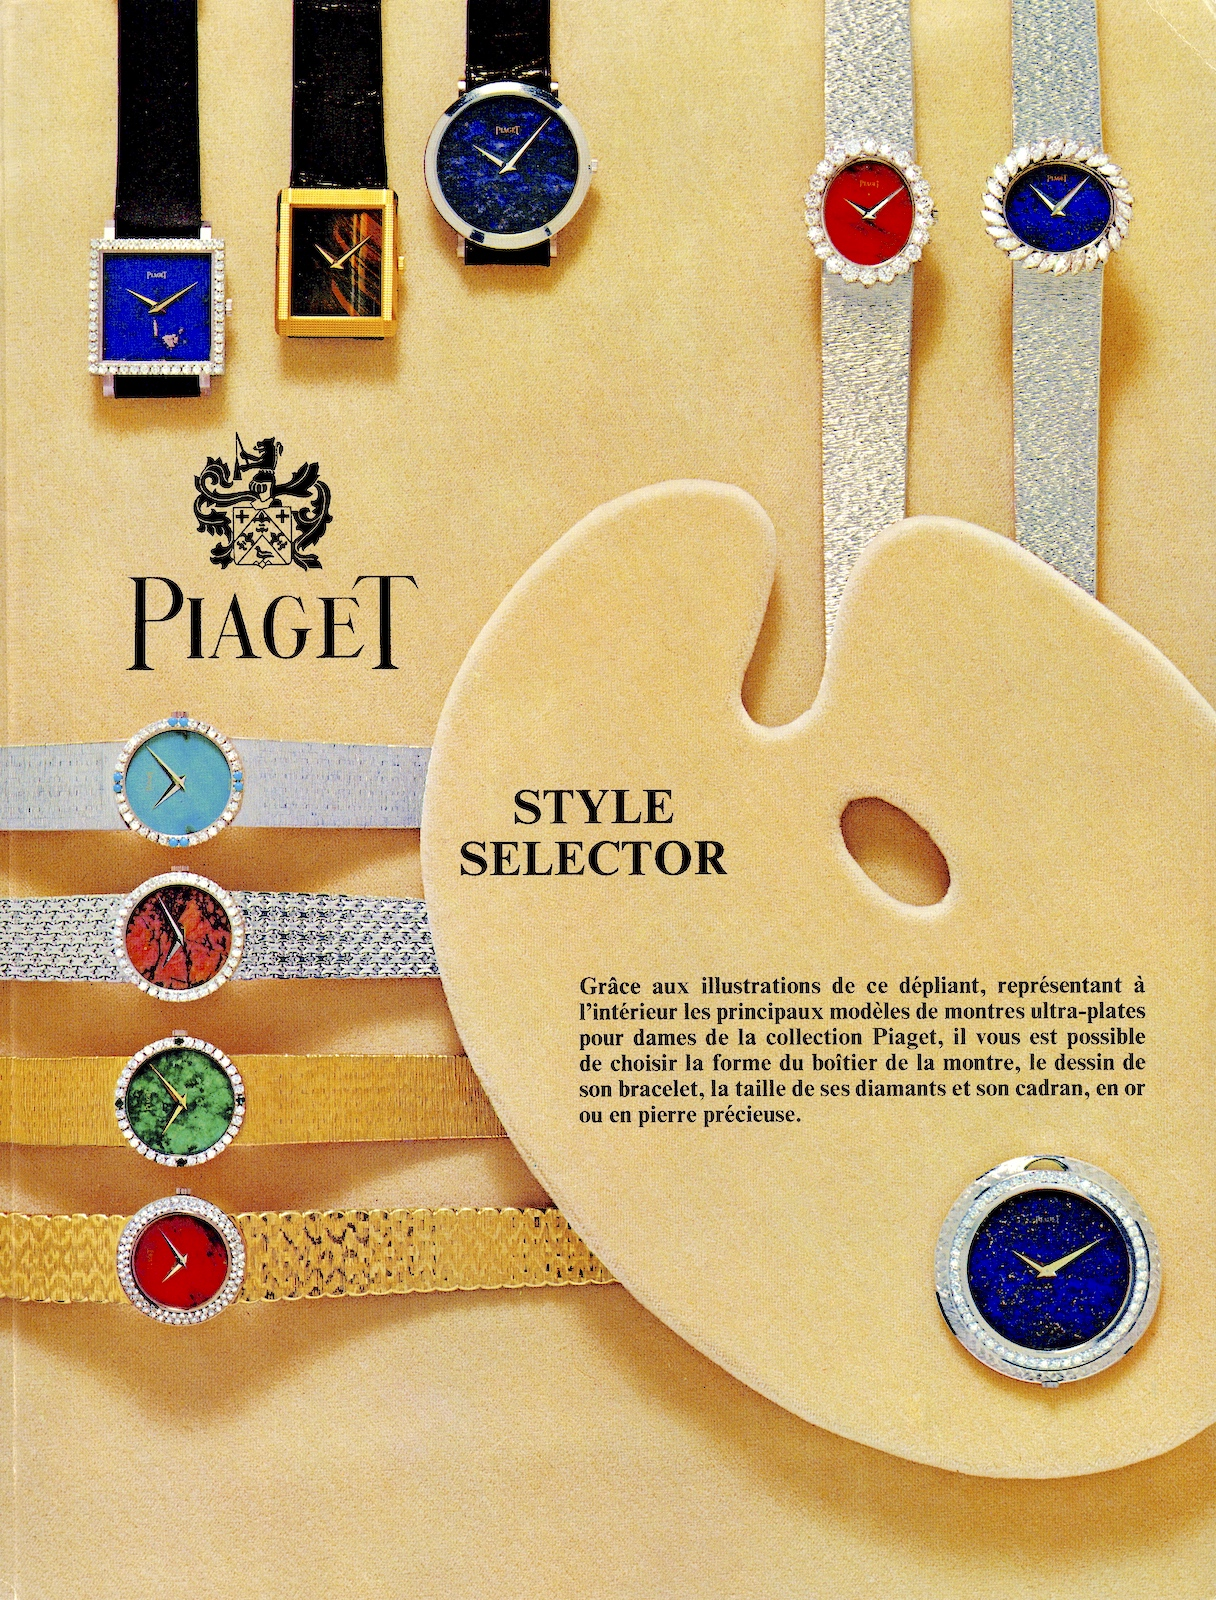 Piaget Style Selector 01